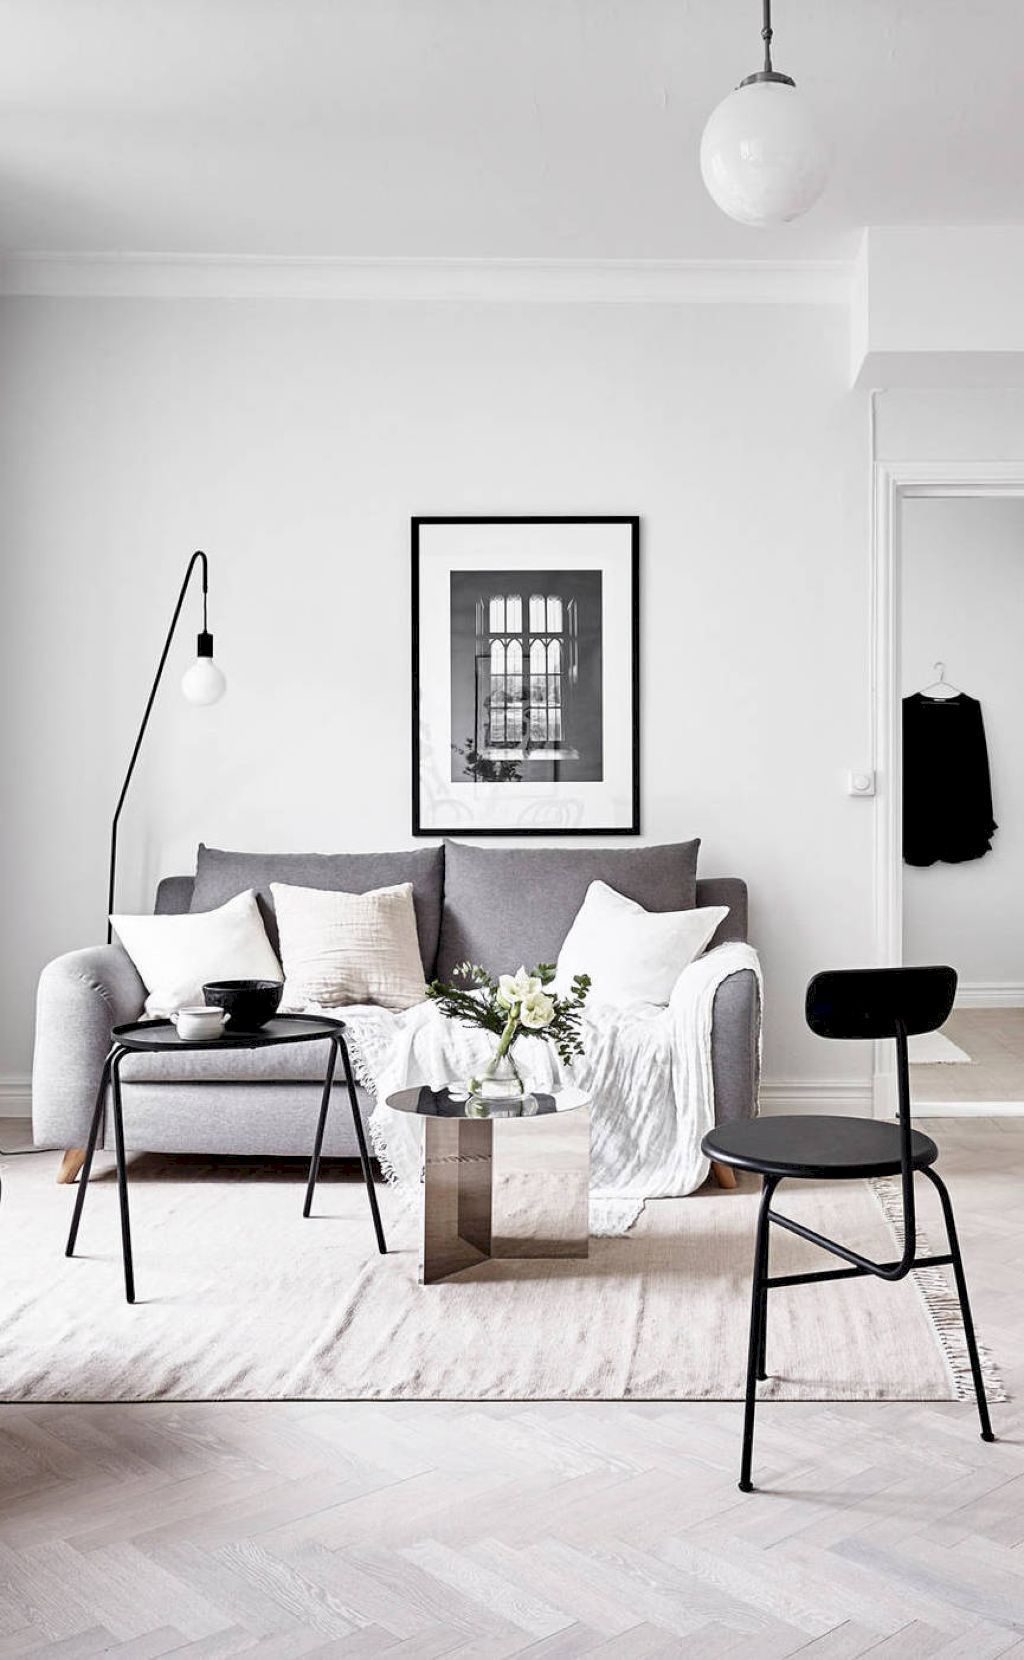 45 Genius Ideas To Design And Create Gorgeous Spaces For